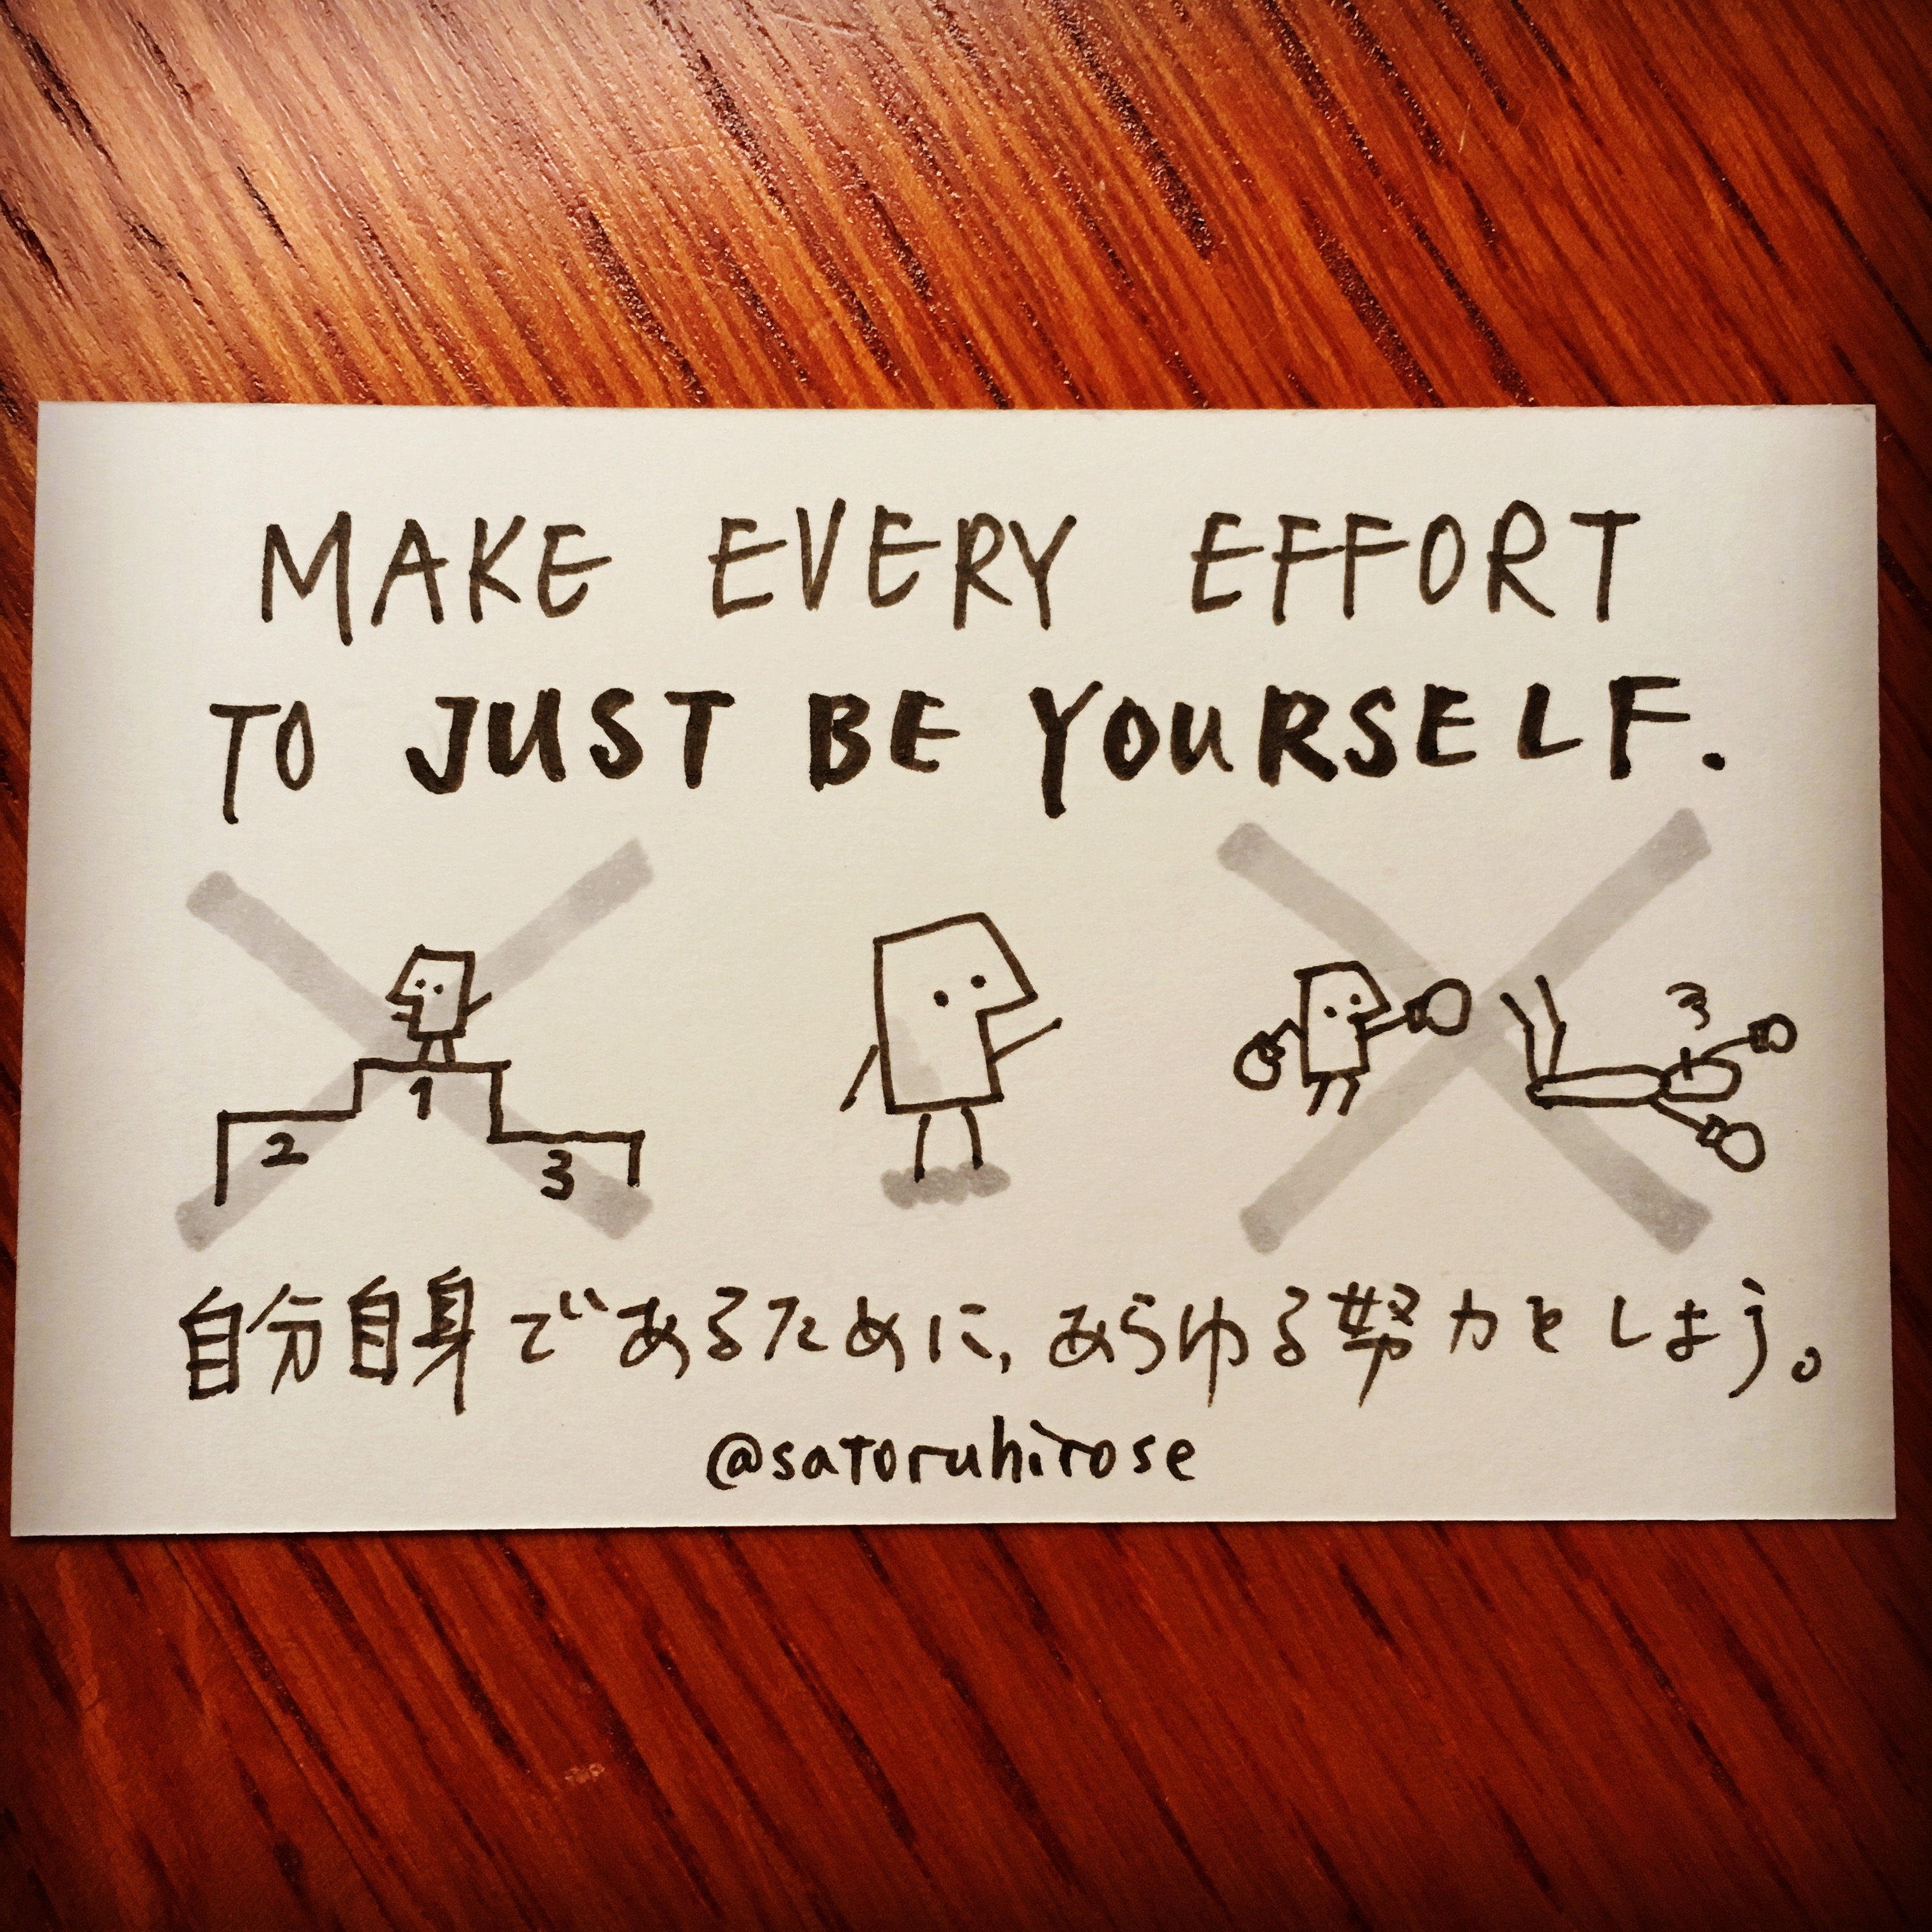 Make every effort to just be yourself.